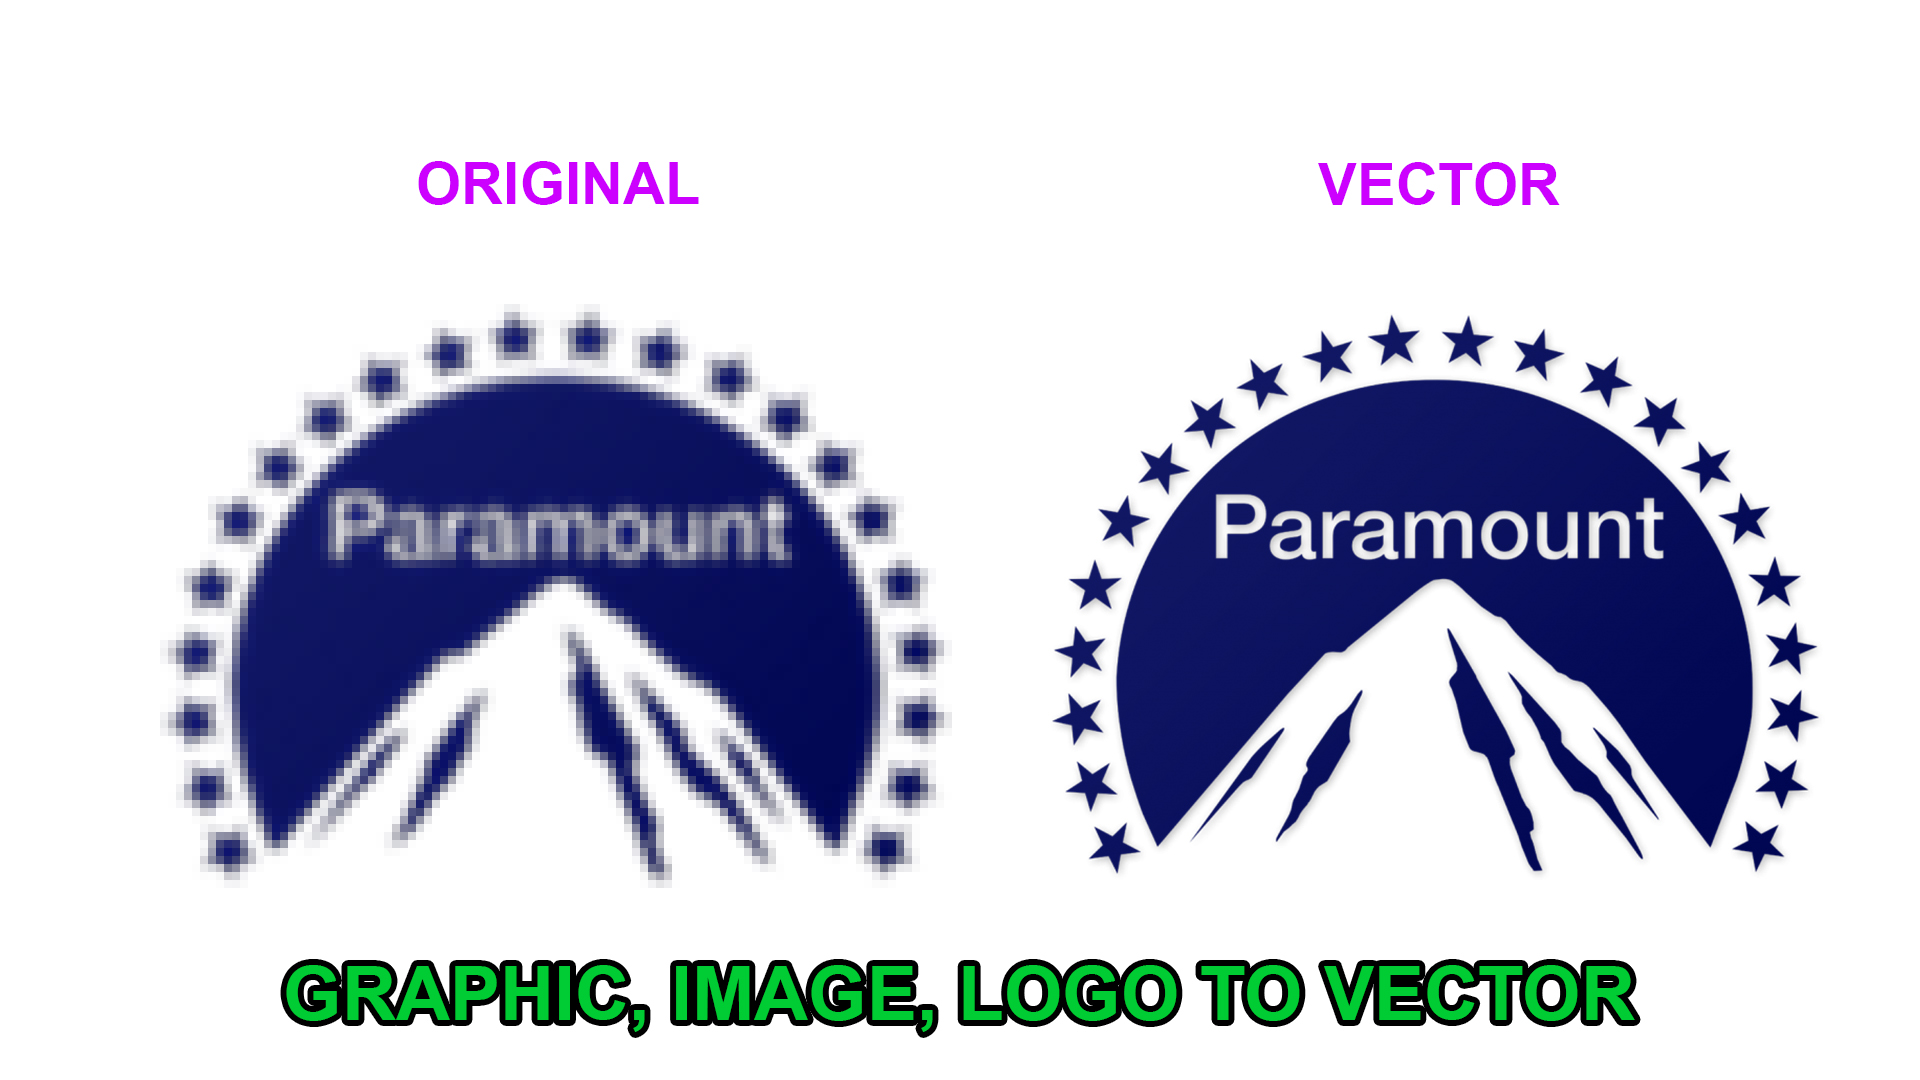 Convert Your Graphic Or Logo To Vector In 24 Hours